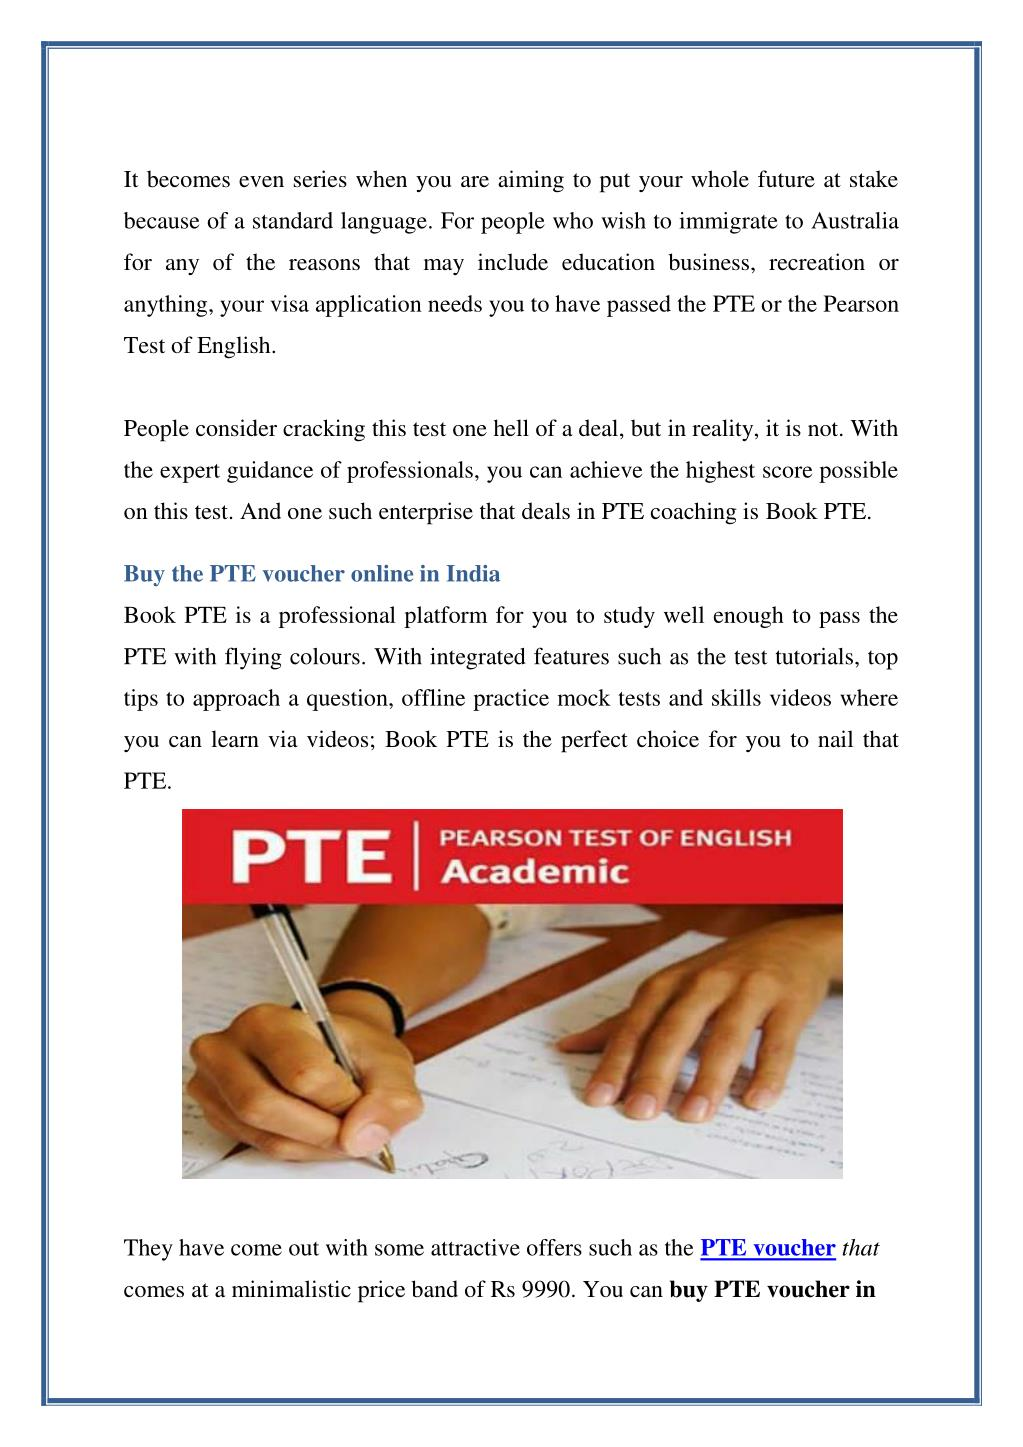 PPT - Book Your Pearson Test for English with The PTE Voucher